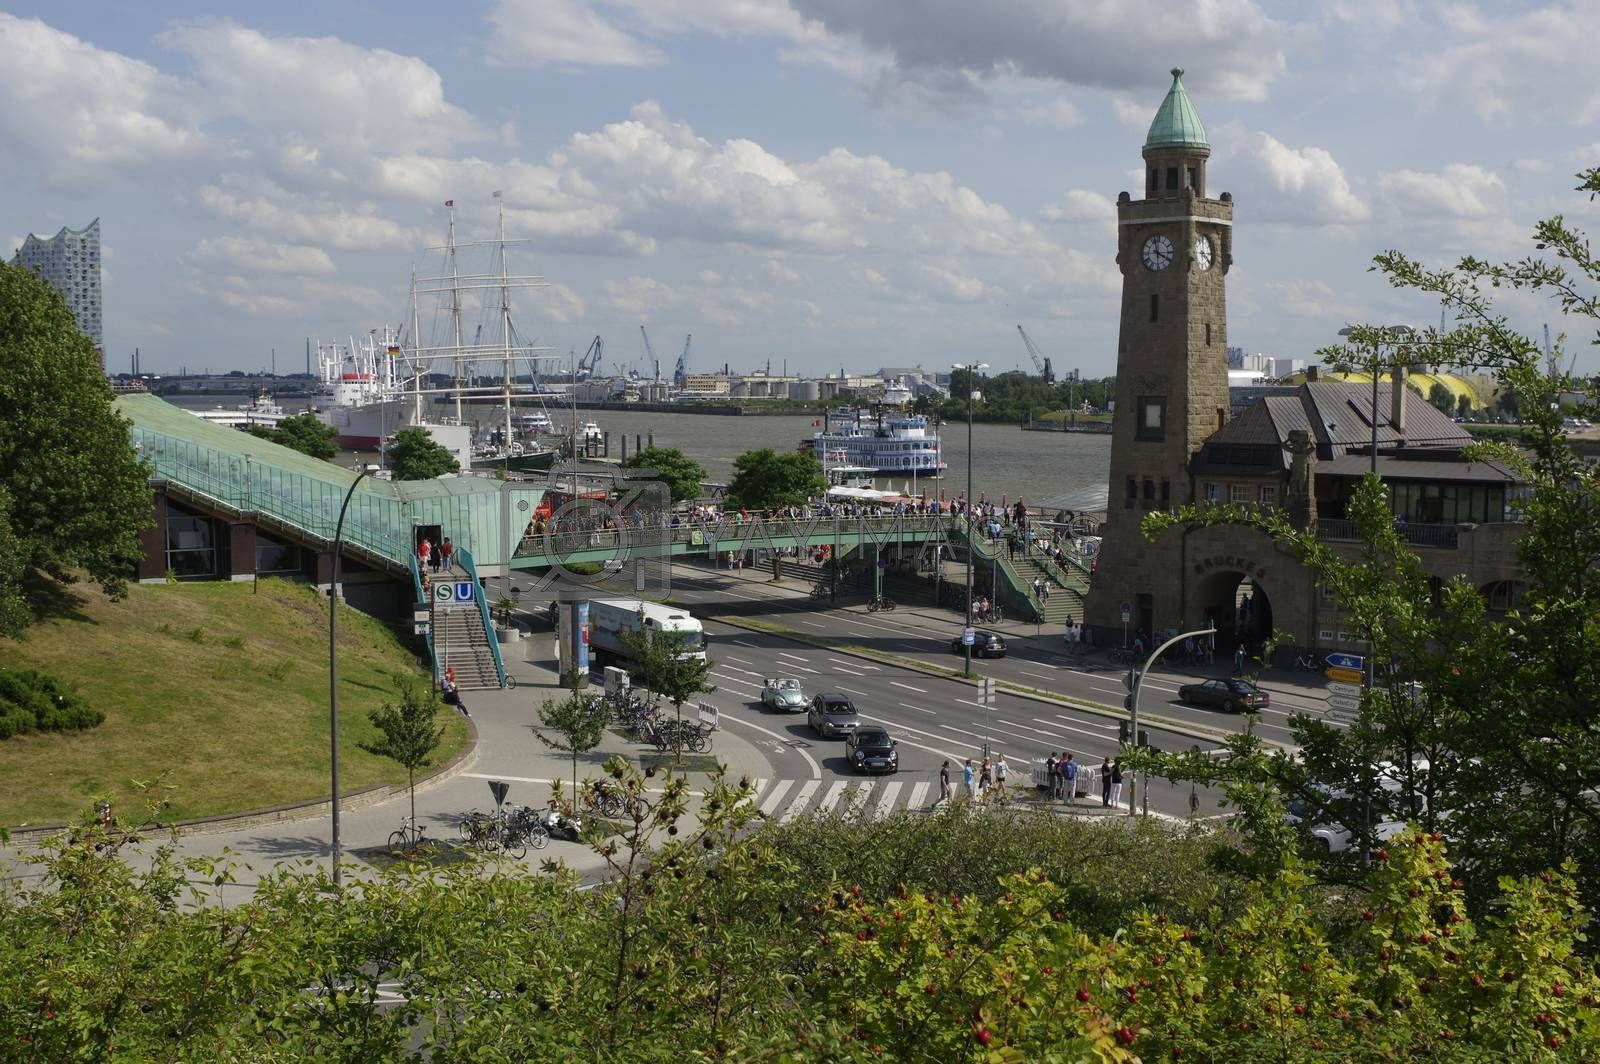 Famous Hamburger Landungsbruecken with harbor and traditional paddle steamer on Elbe river, St Pauli district, Hamburg, Germany